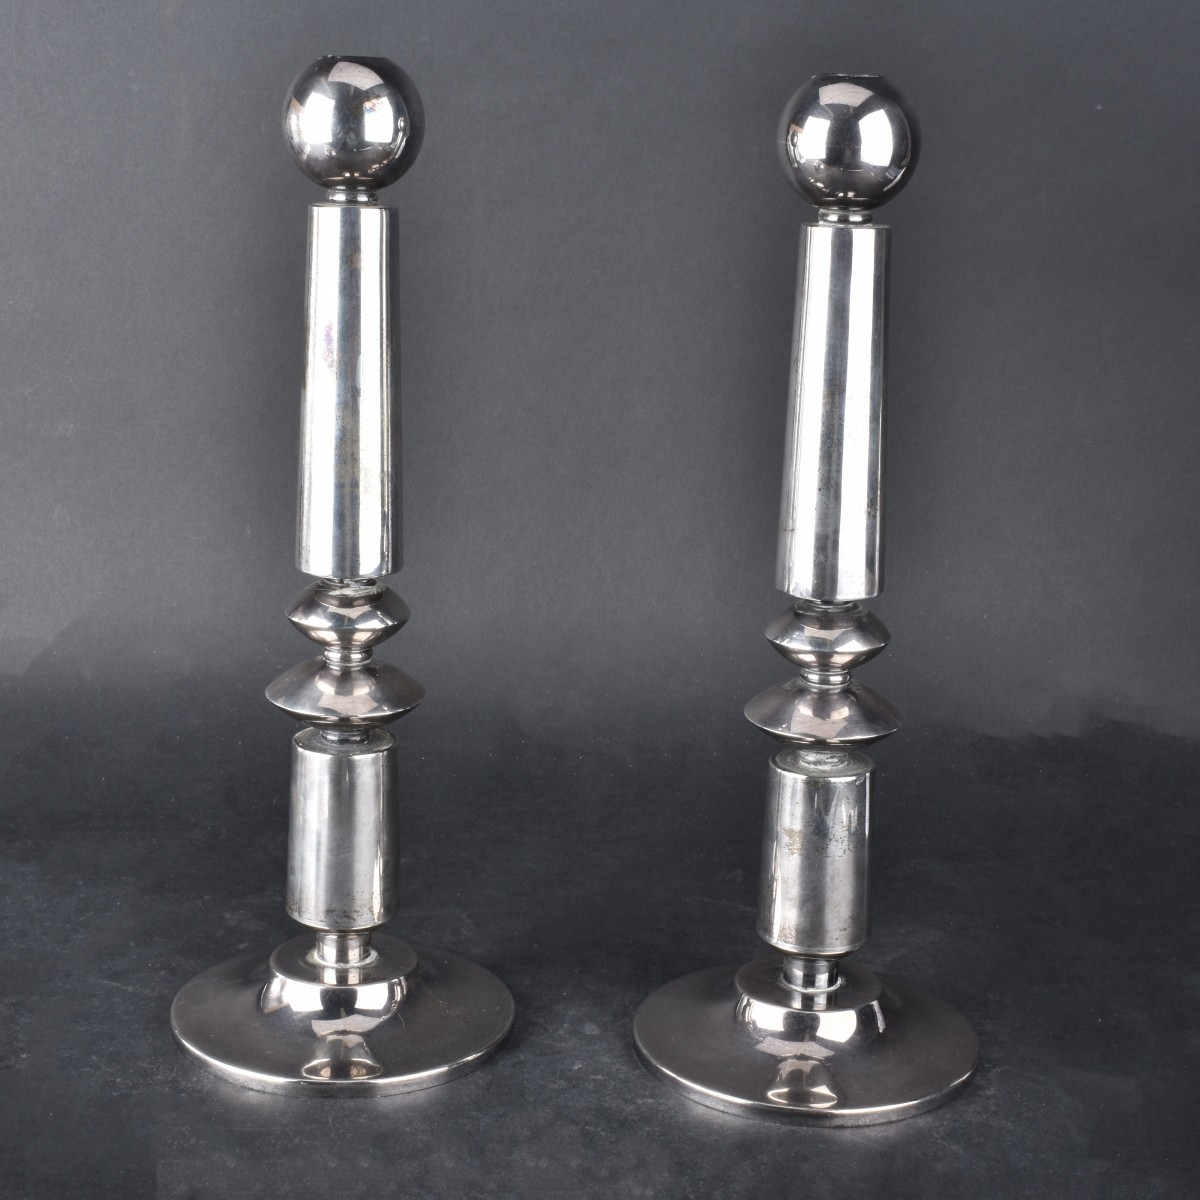 Pair of Israeli Sterling Silver Candlesticks